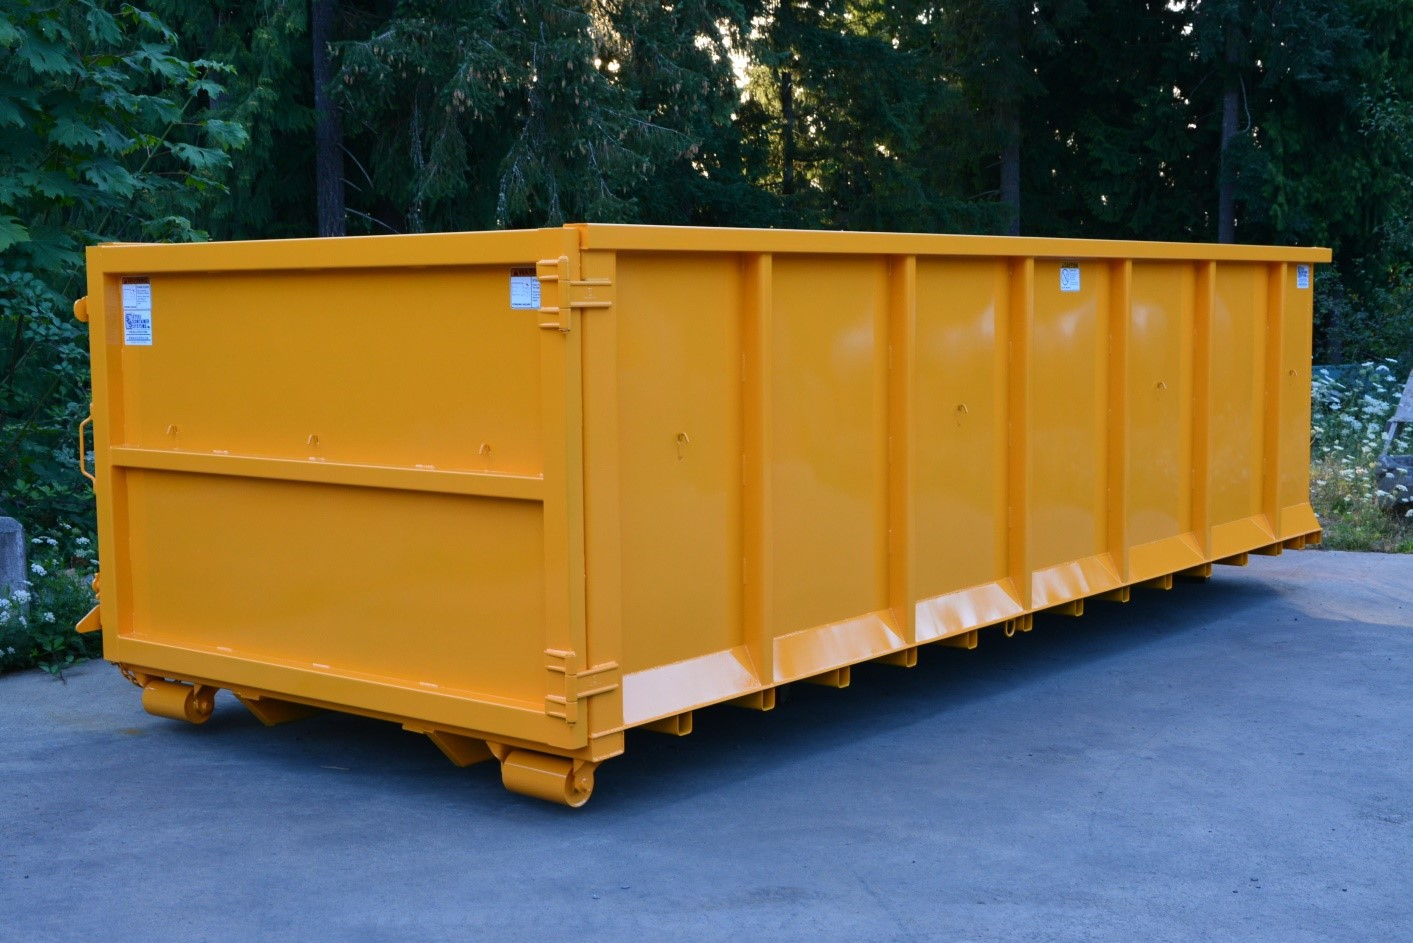 Dumpsters for Construction and Best Types of Dumpsters